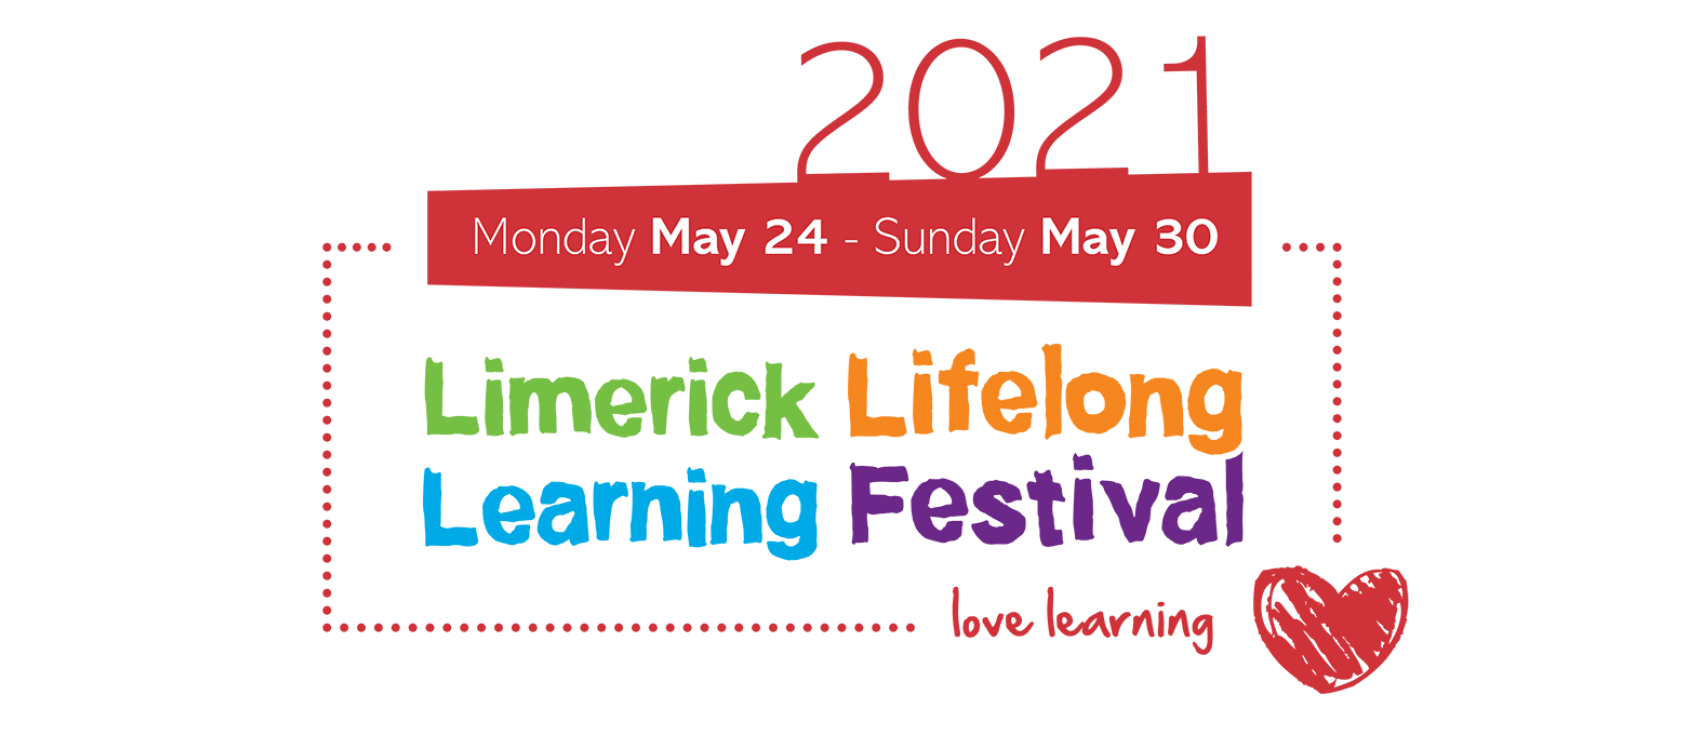 Limerick Lifelong Learning Festival 2021